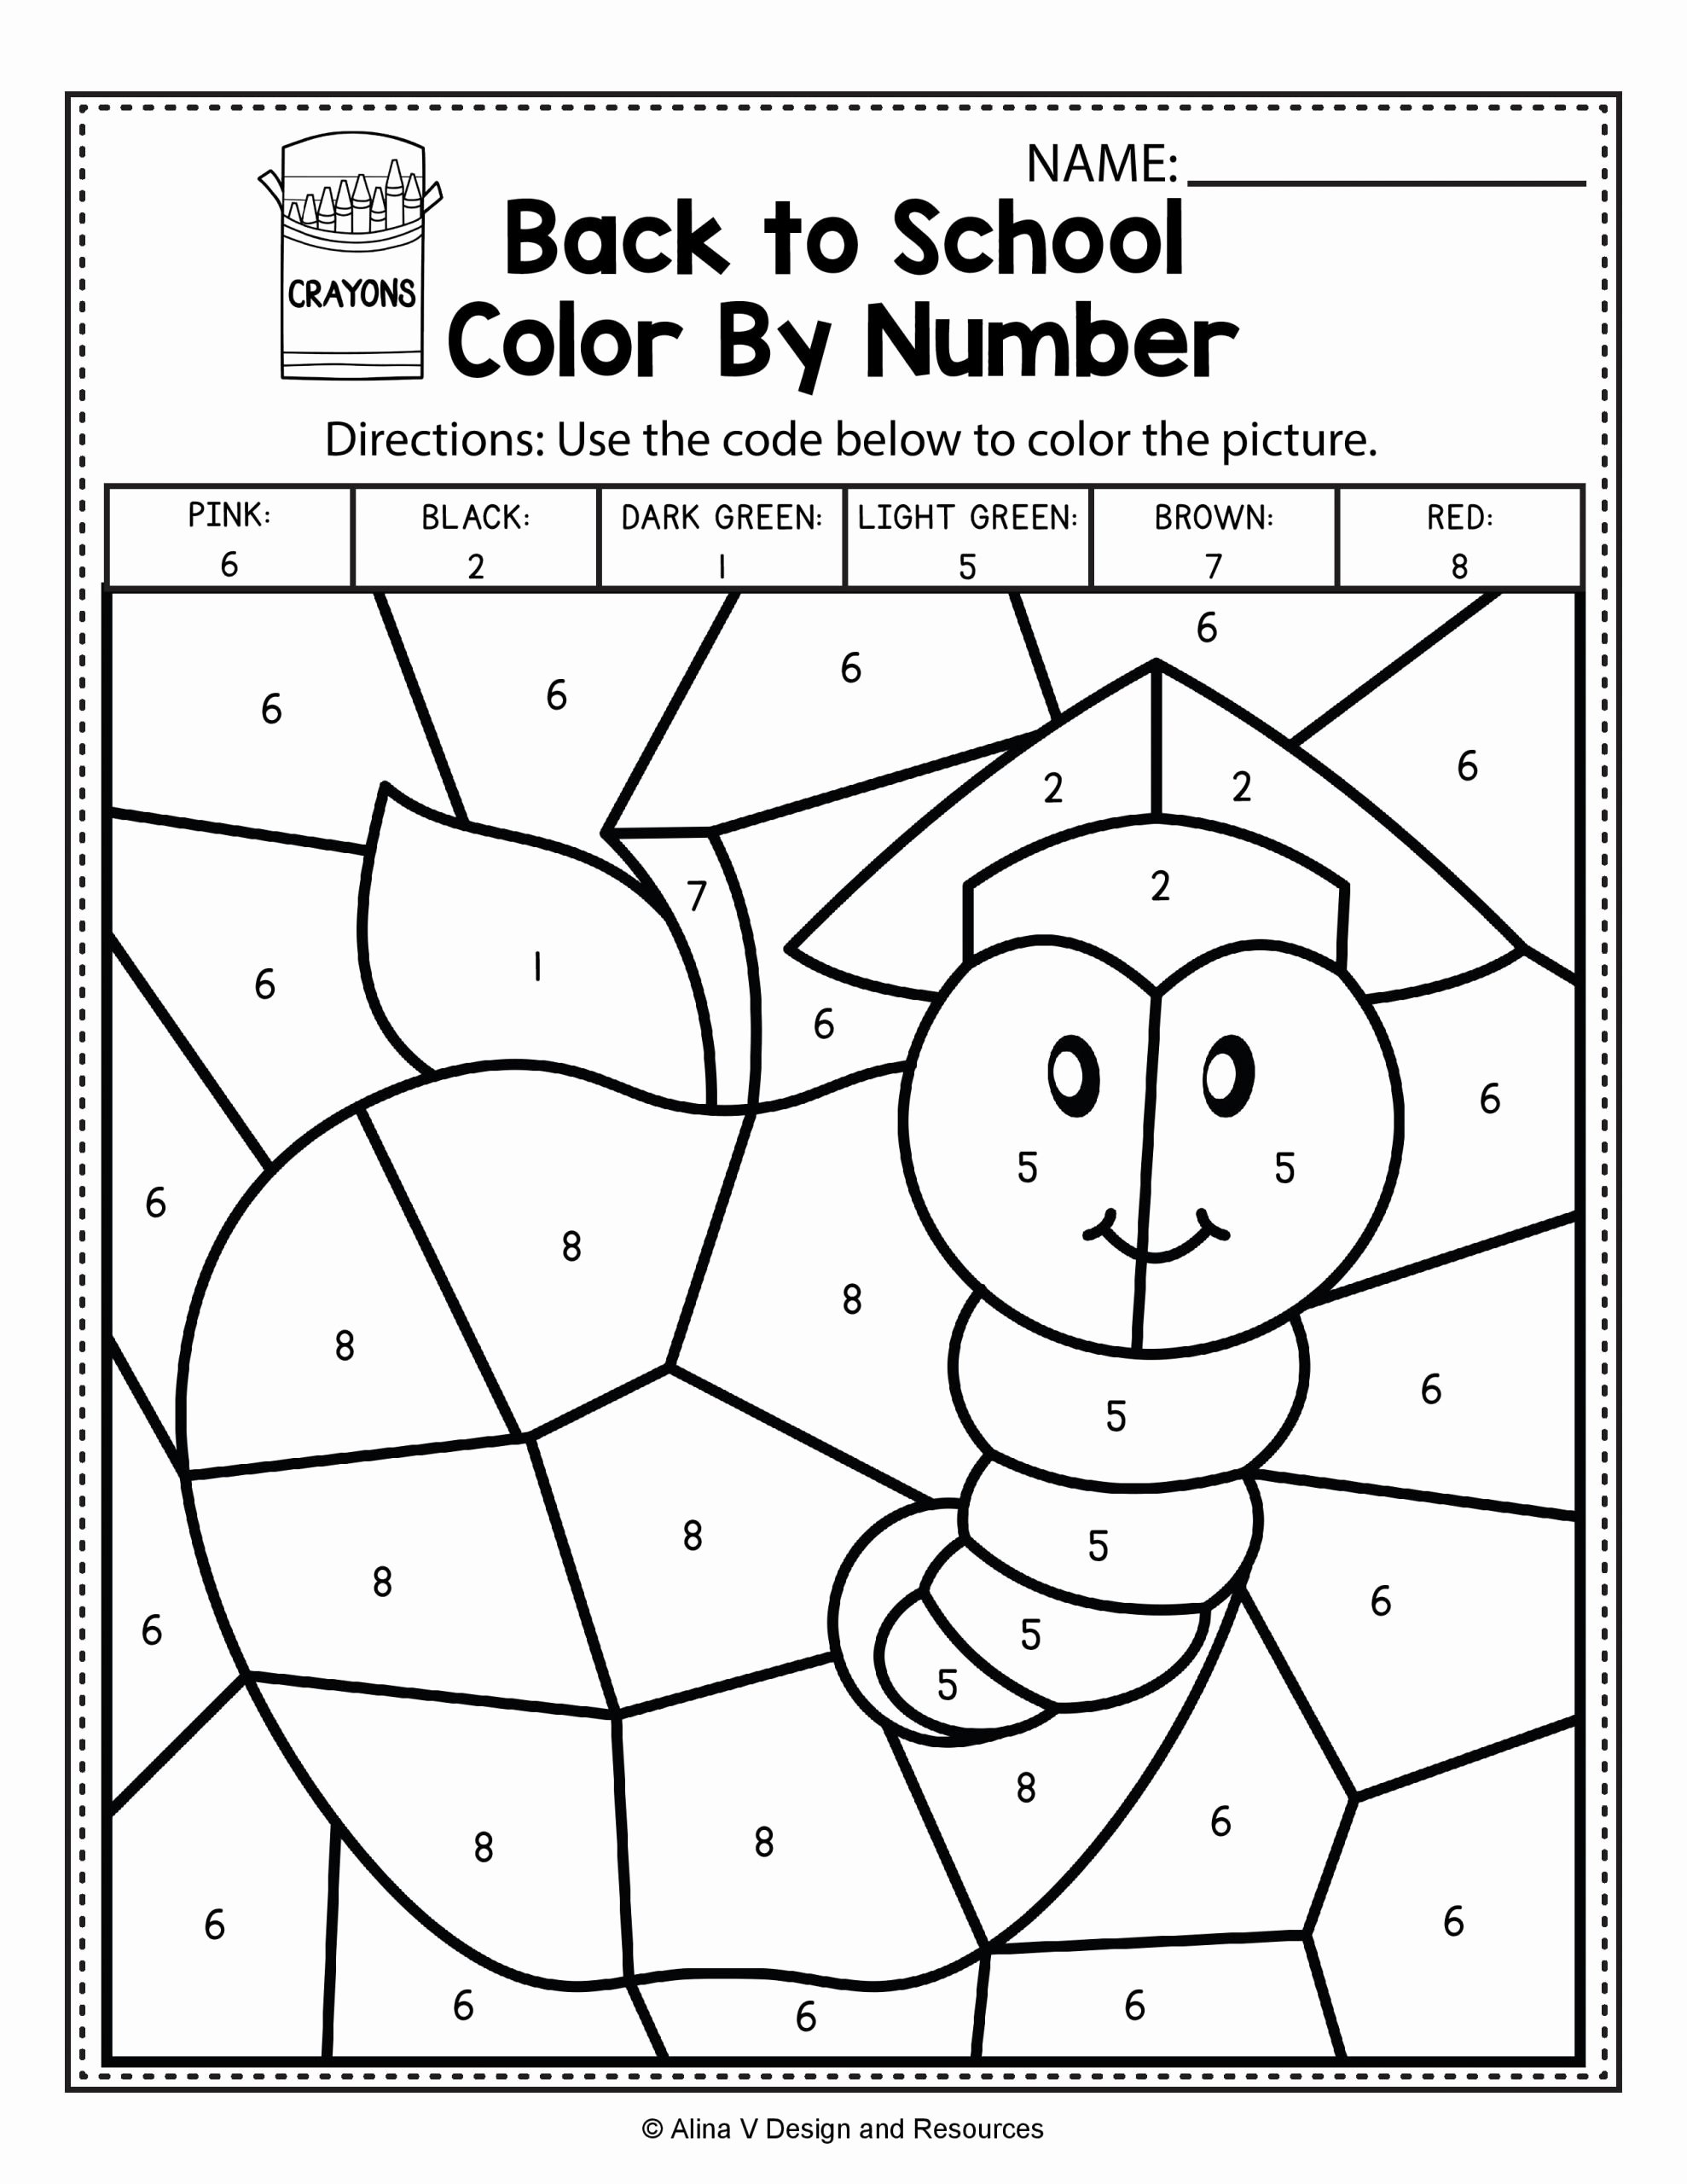 Color by Number Math Worksheets Printable Coloring Sheet Back to School Color by Number Math